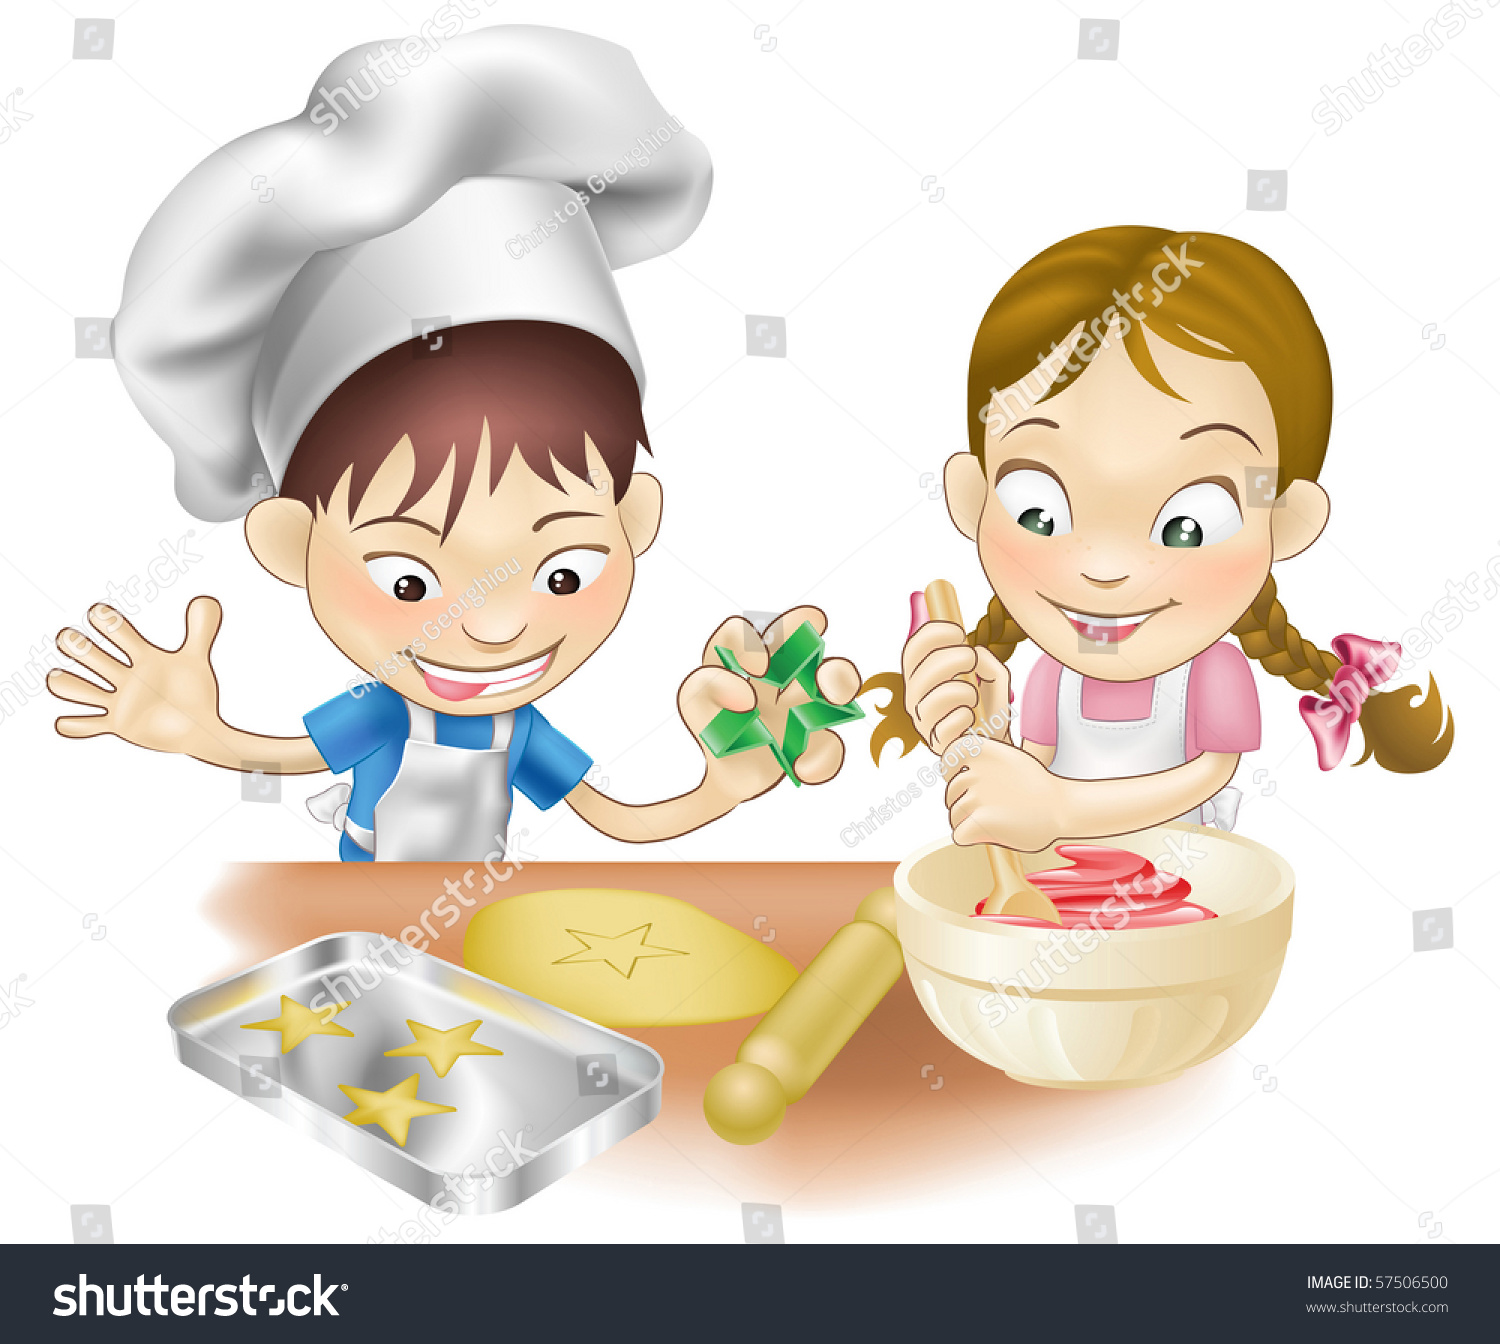 Fun Kitchen Illustration Two Children Having Fun Kitchen Stock Vector 57506500